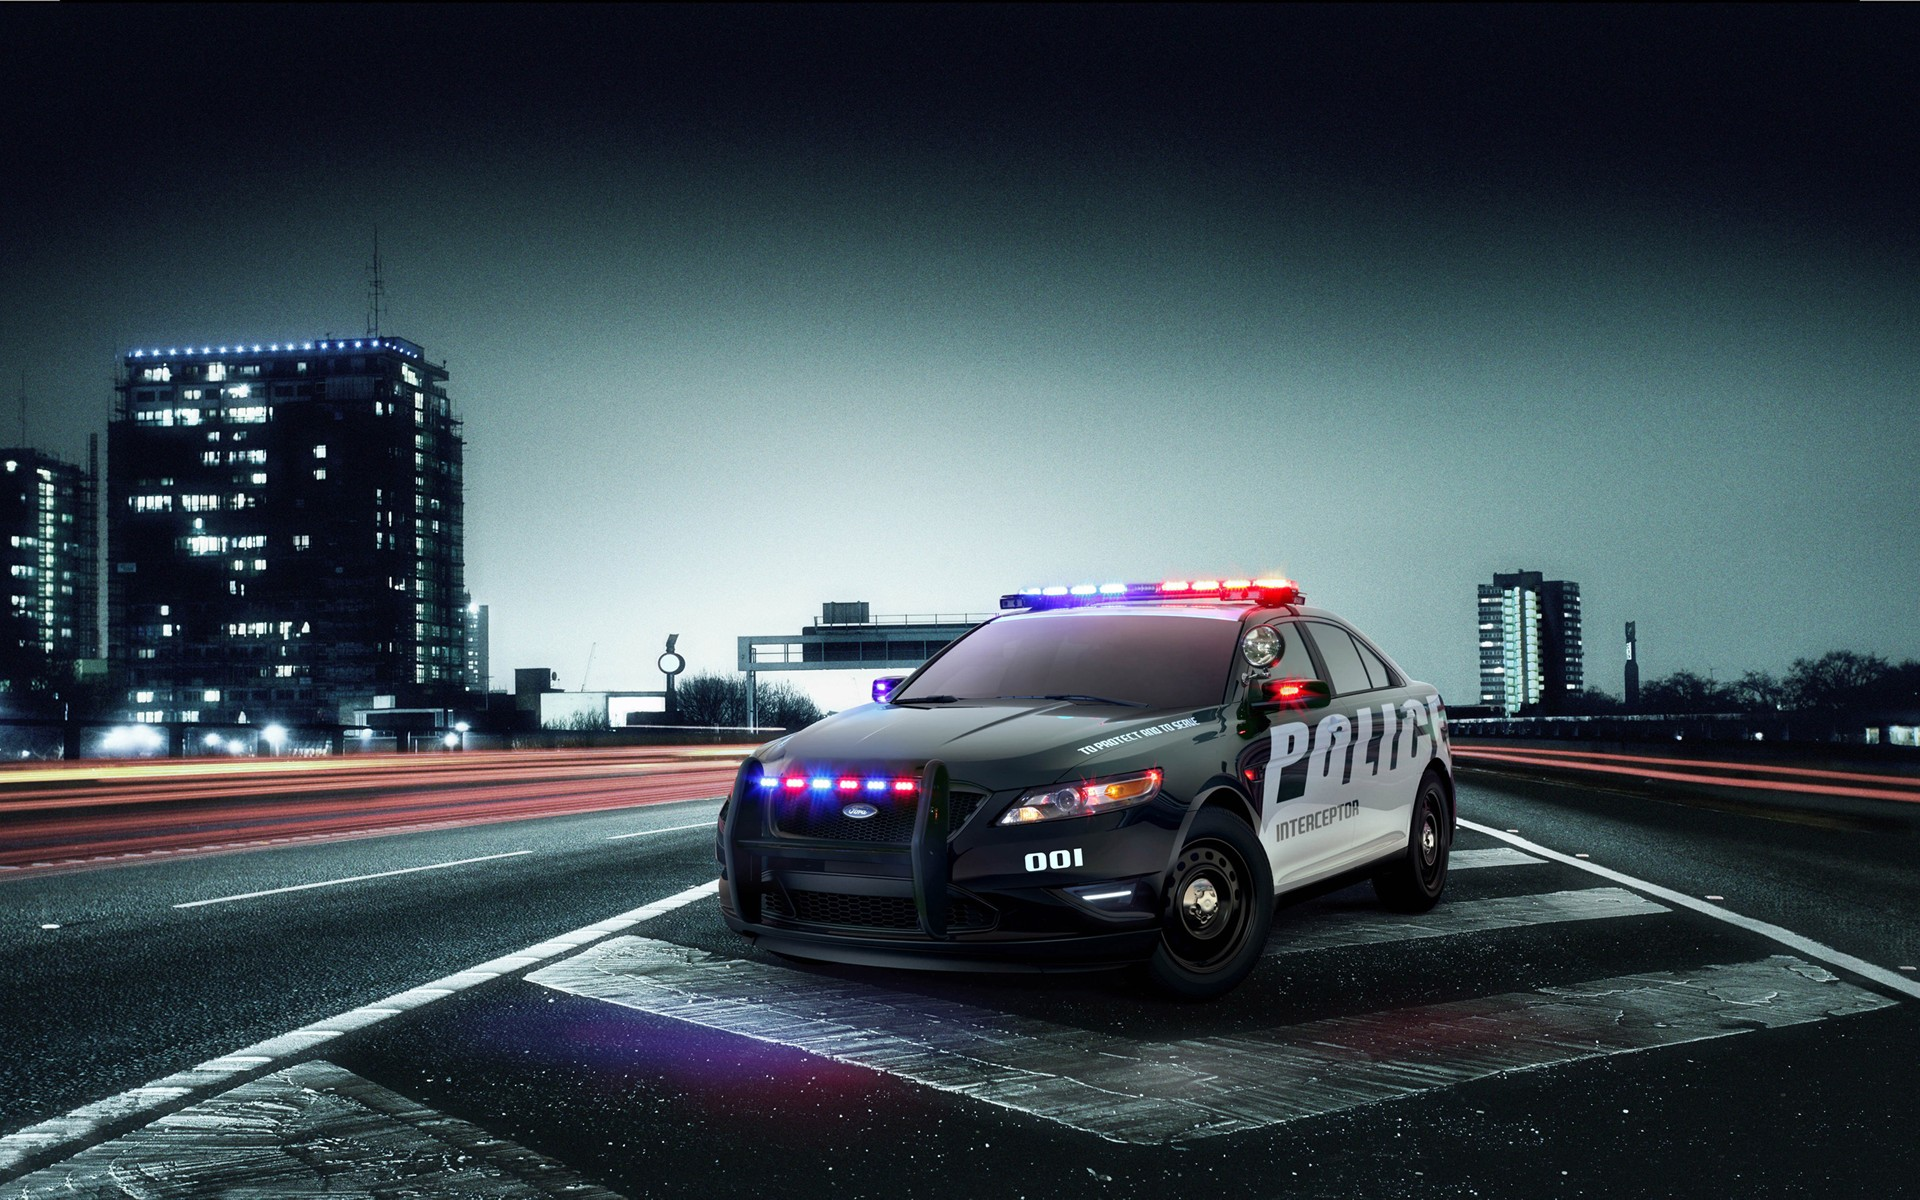 Ford Police Interceptor Wallpapers HD Wallpapers 1920x1200